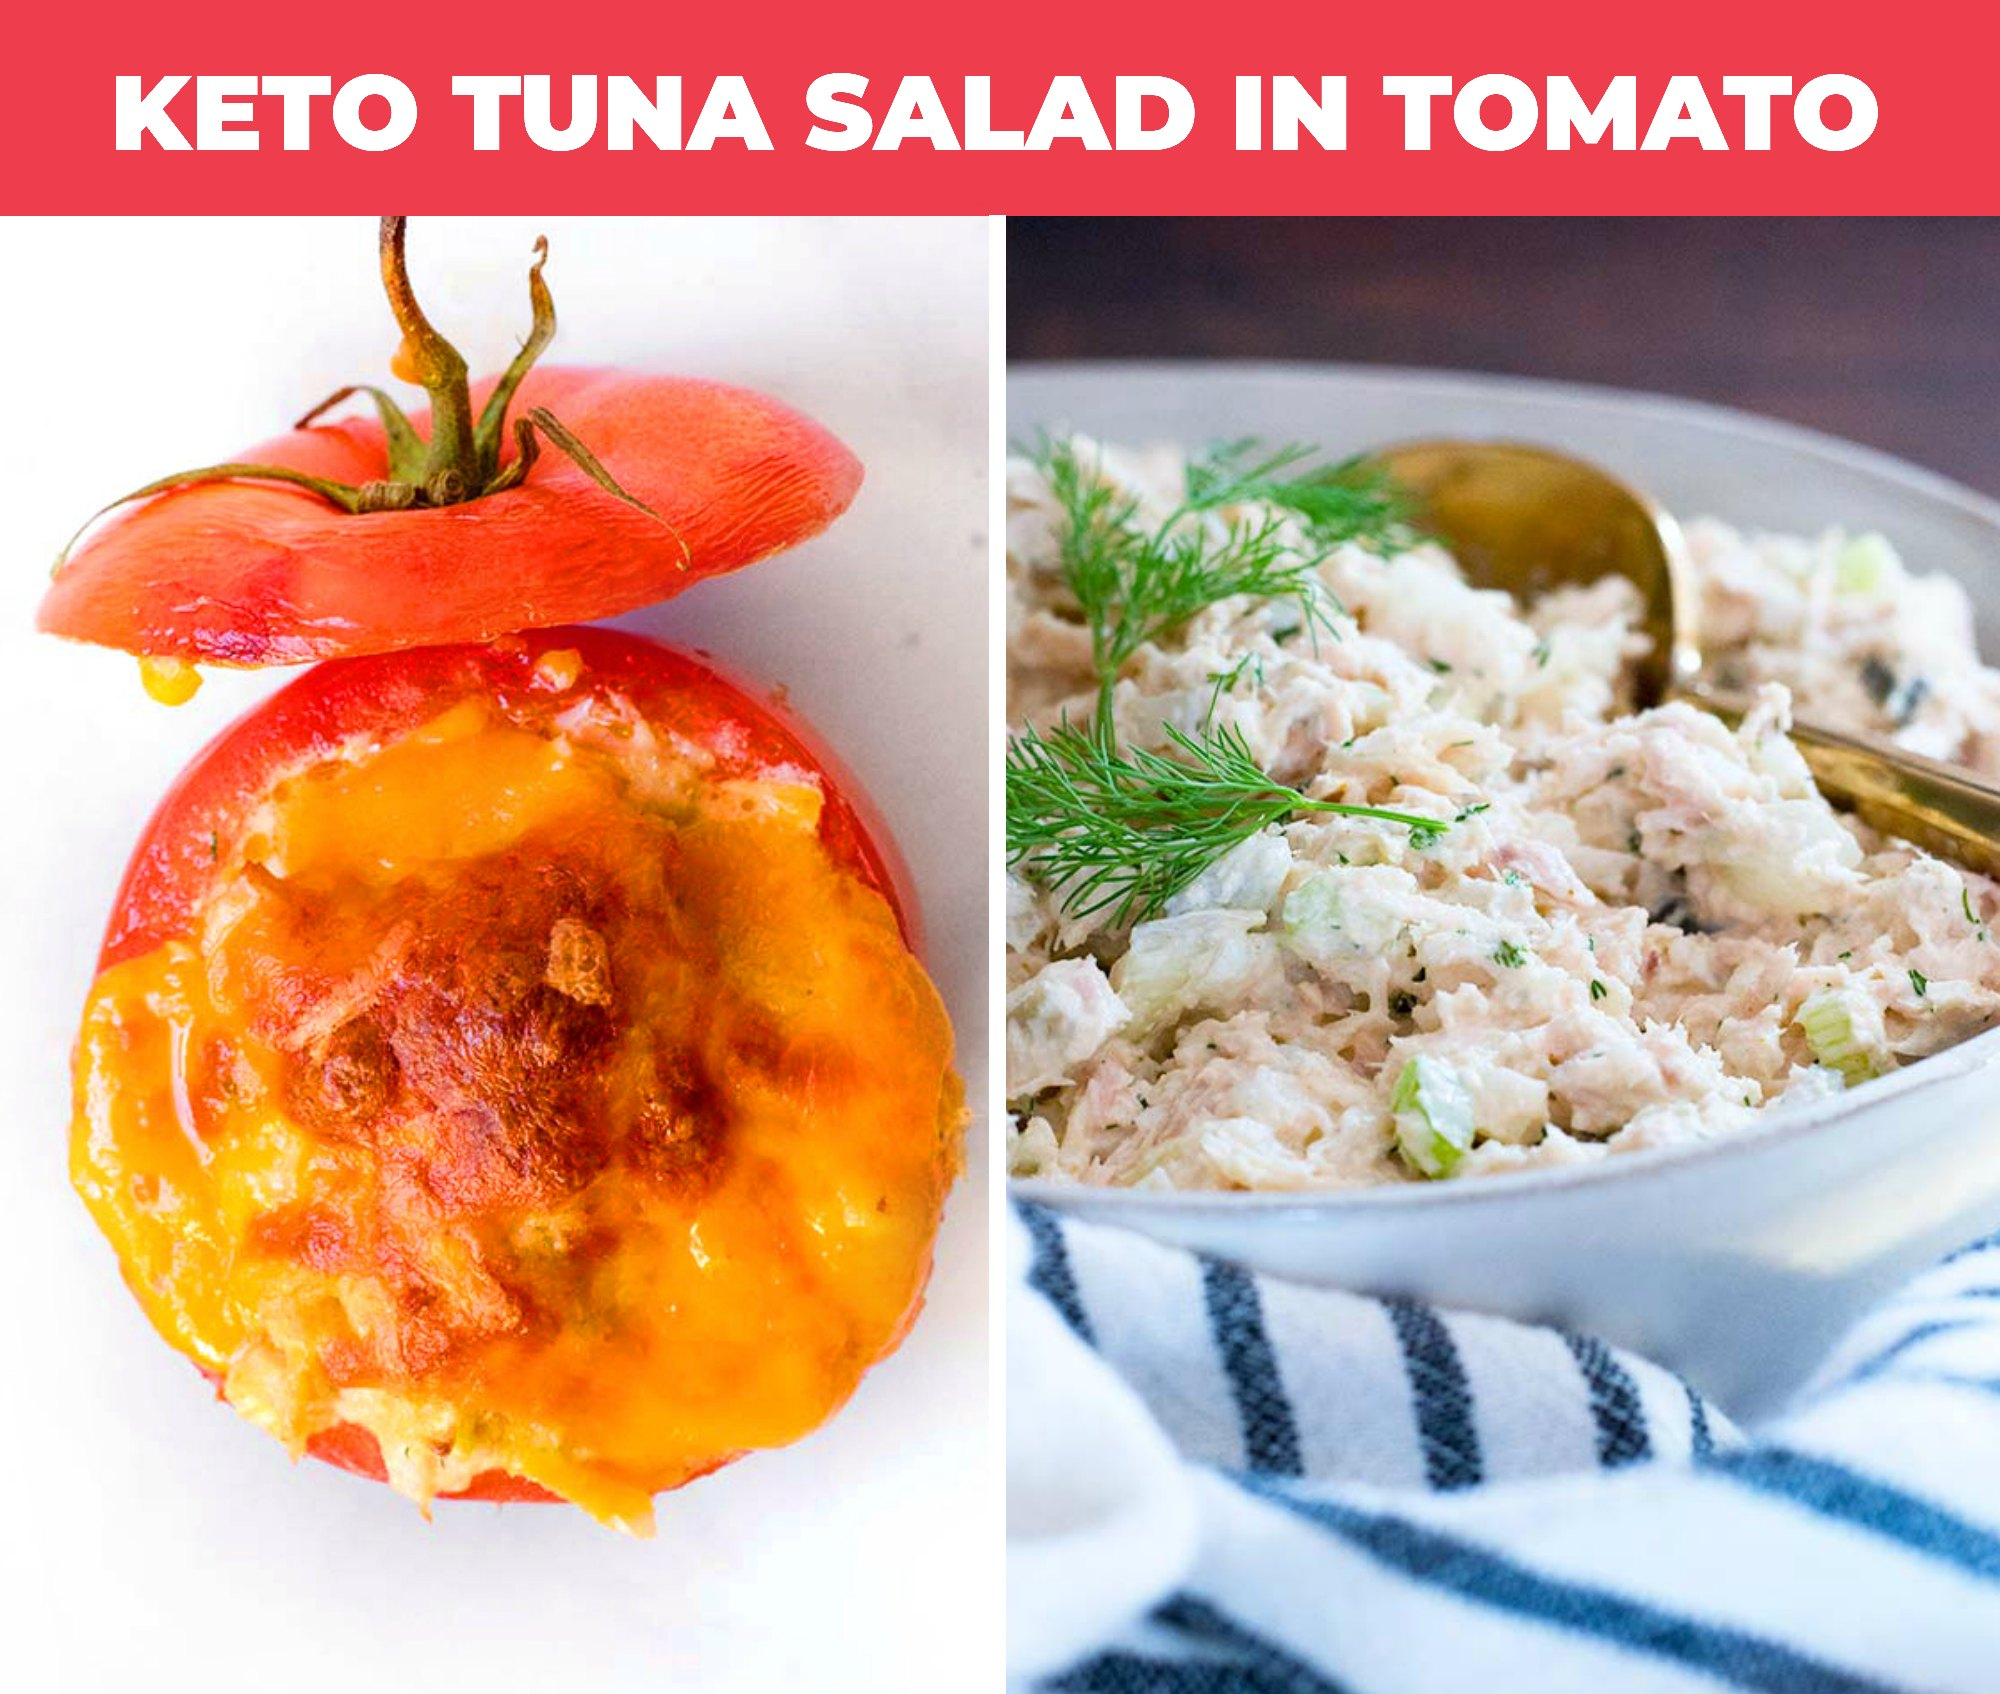 Image of keto tuna salad in tomato and in a white bowl